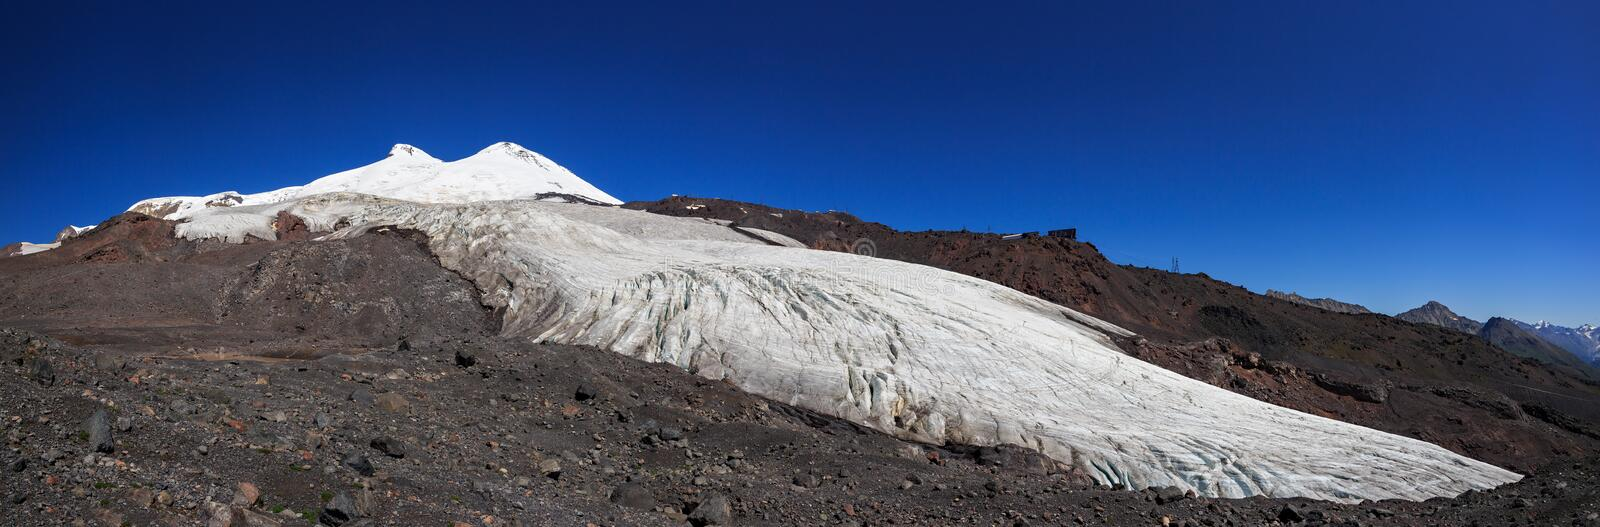 Panoramic view of the southern slope of Mount Elbrus. And the Small Azau Glacier of the Caucasus Mountains in Russia. Snow-covered mountain two peaks royalty free stock image